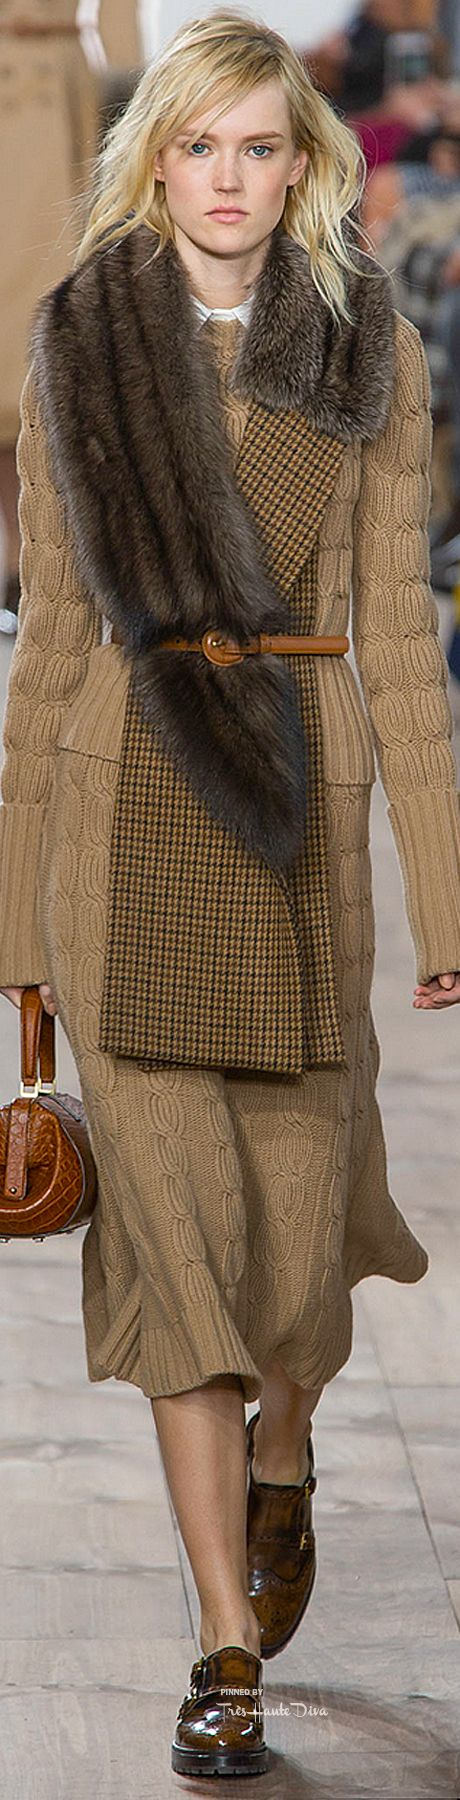 Michael Kors Fall 2015 RTW